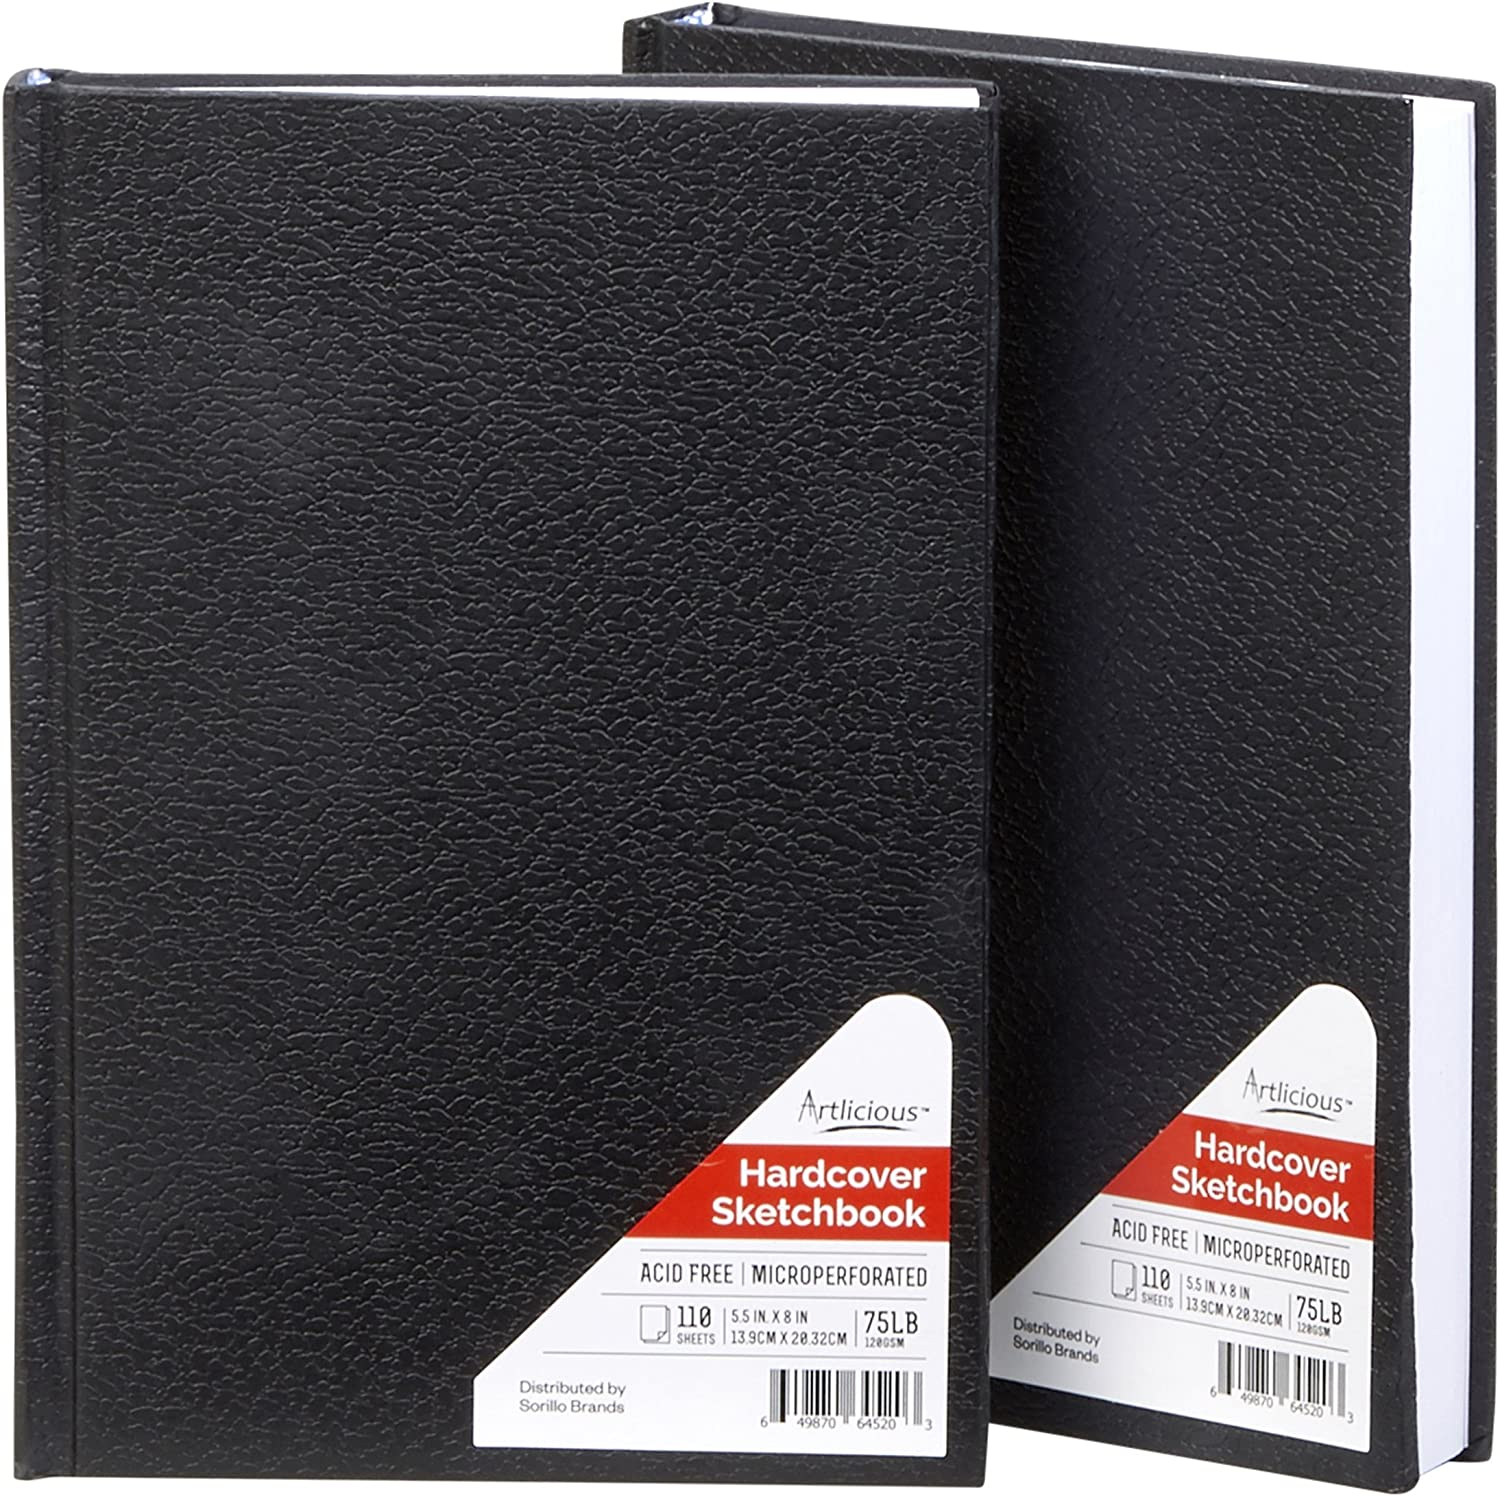 Artlicious - 2 Hardcover Sketch Books, Drawing Pads, Hardbound Value Pack - 5.5 inch x 8 inch